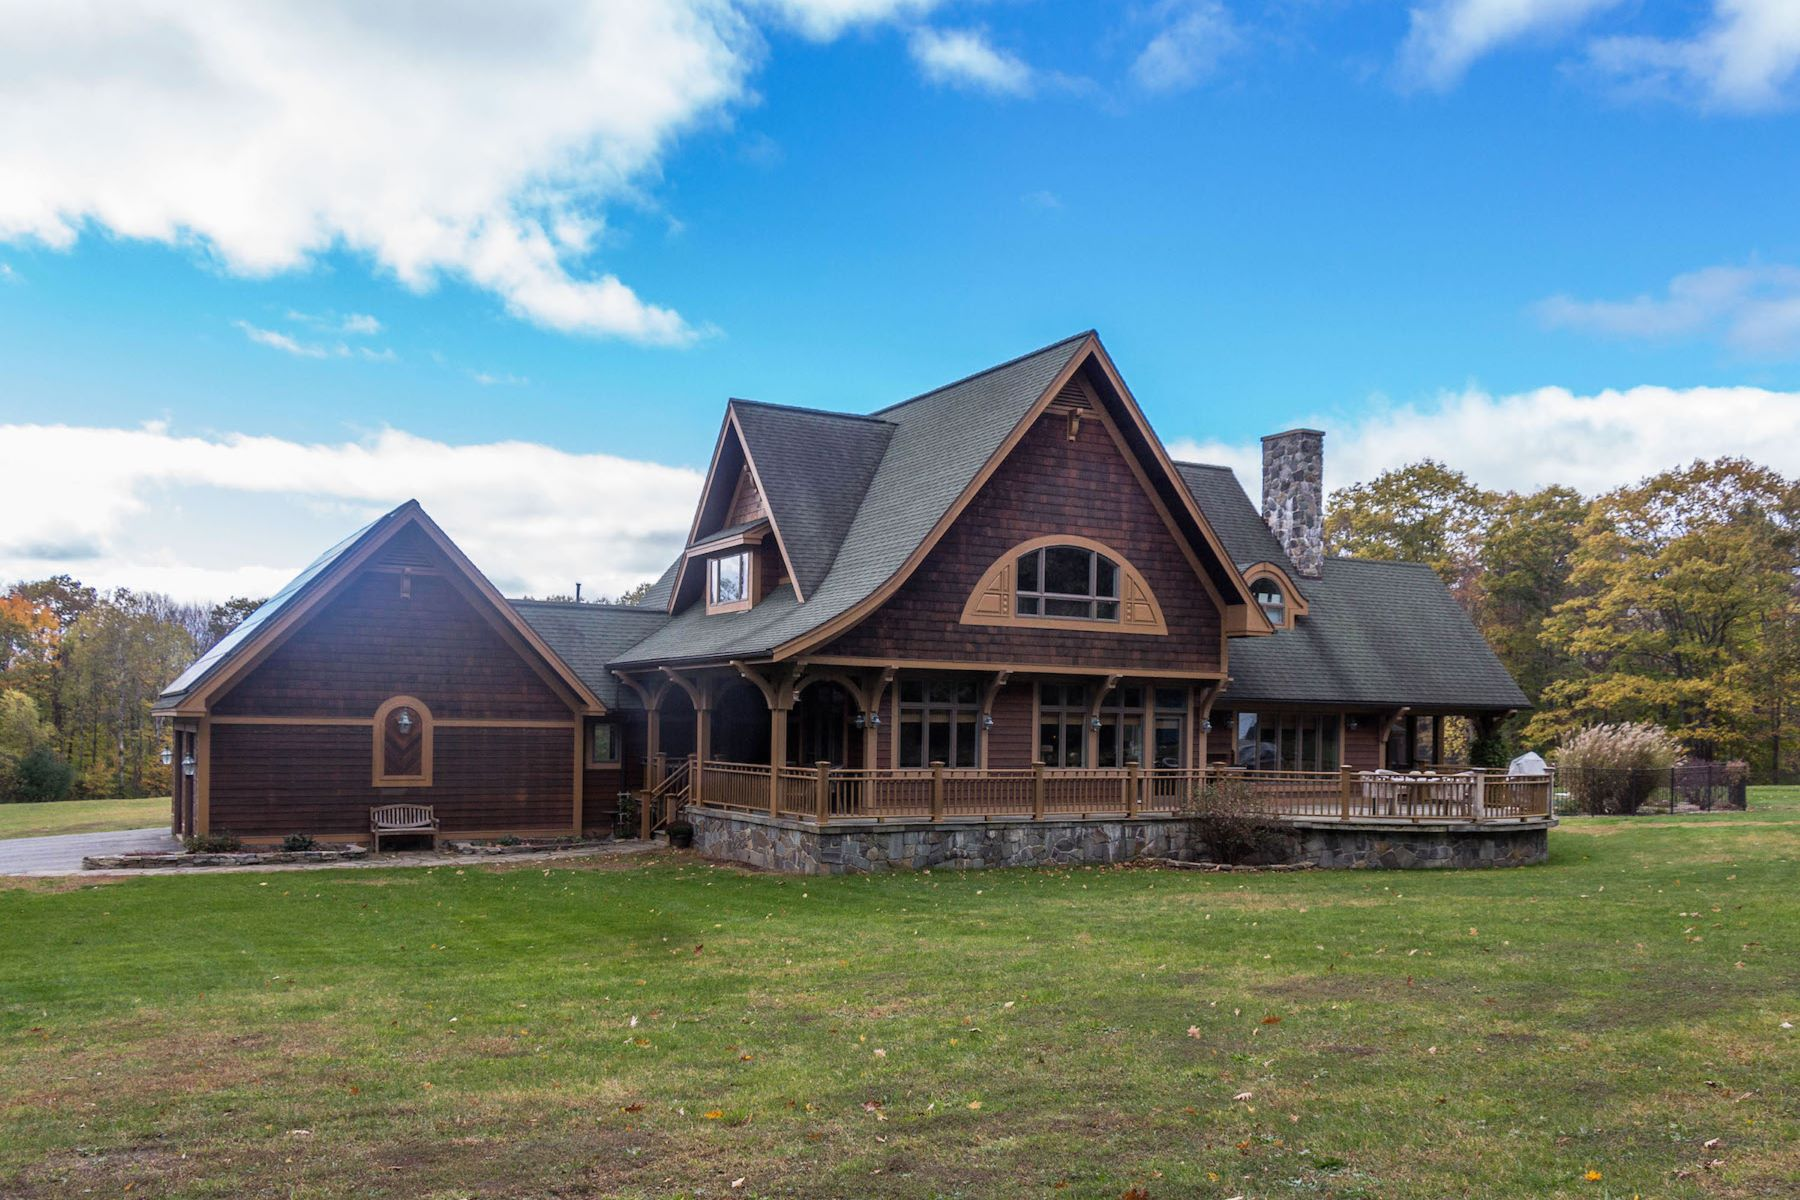 Single Family Homes for Sale at Storybook Craftsman Chalet 1112 Whitesides Rd Galway, New York 12074 United States